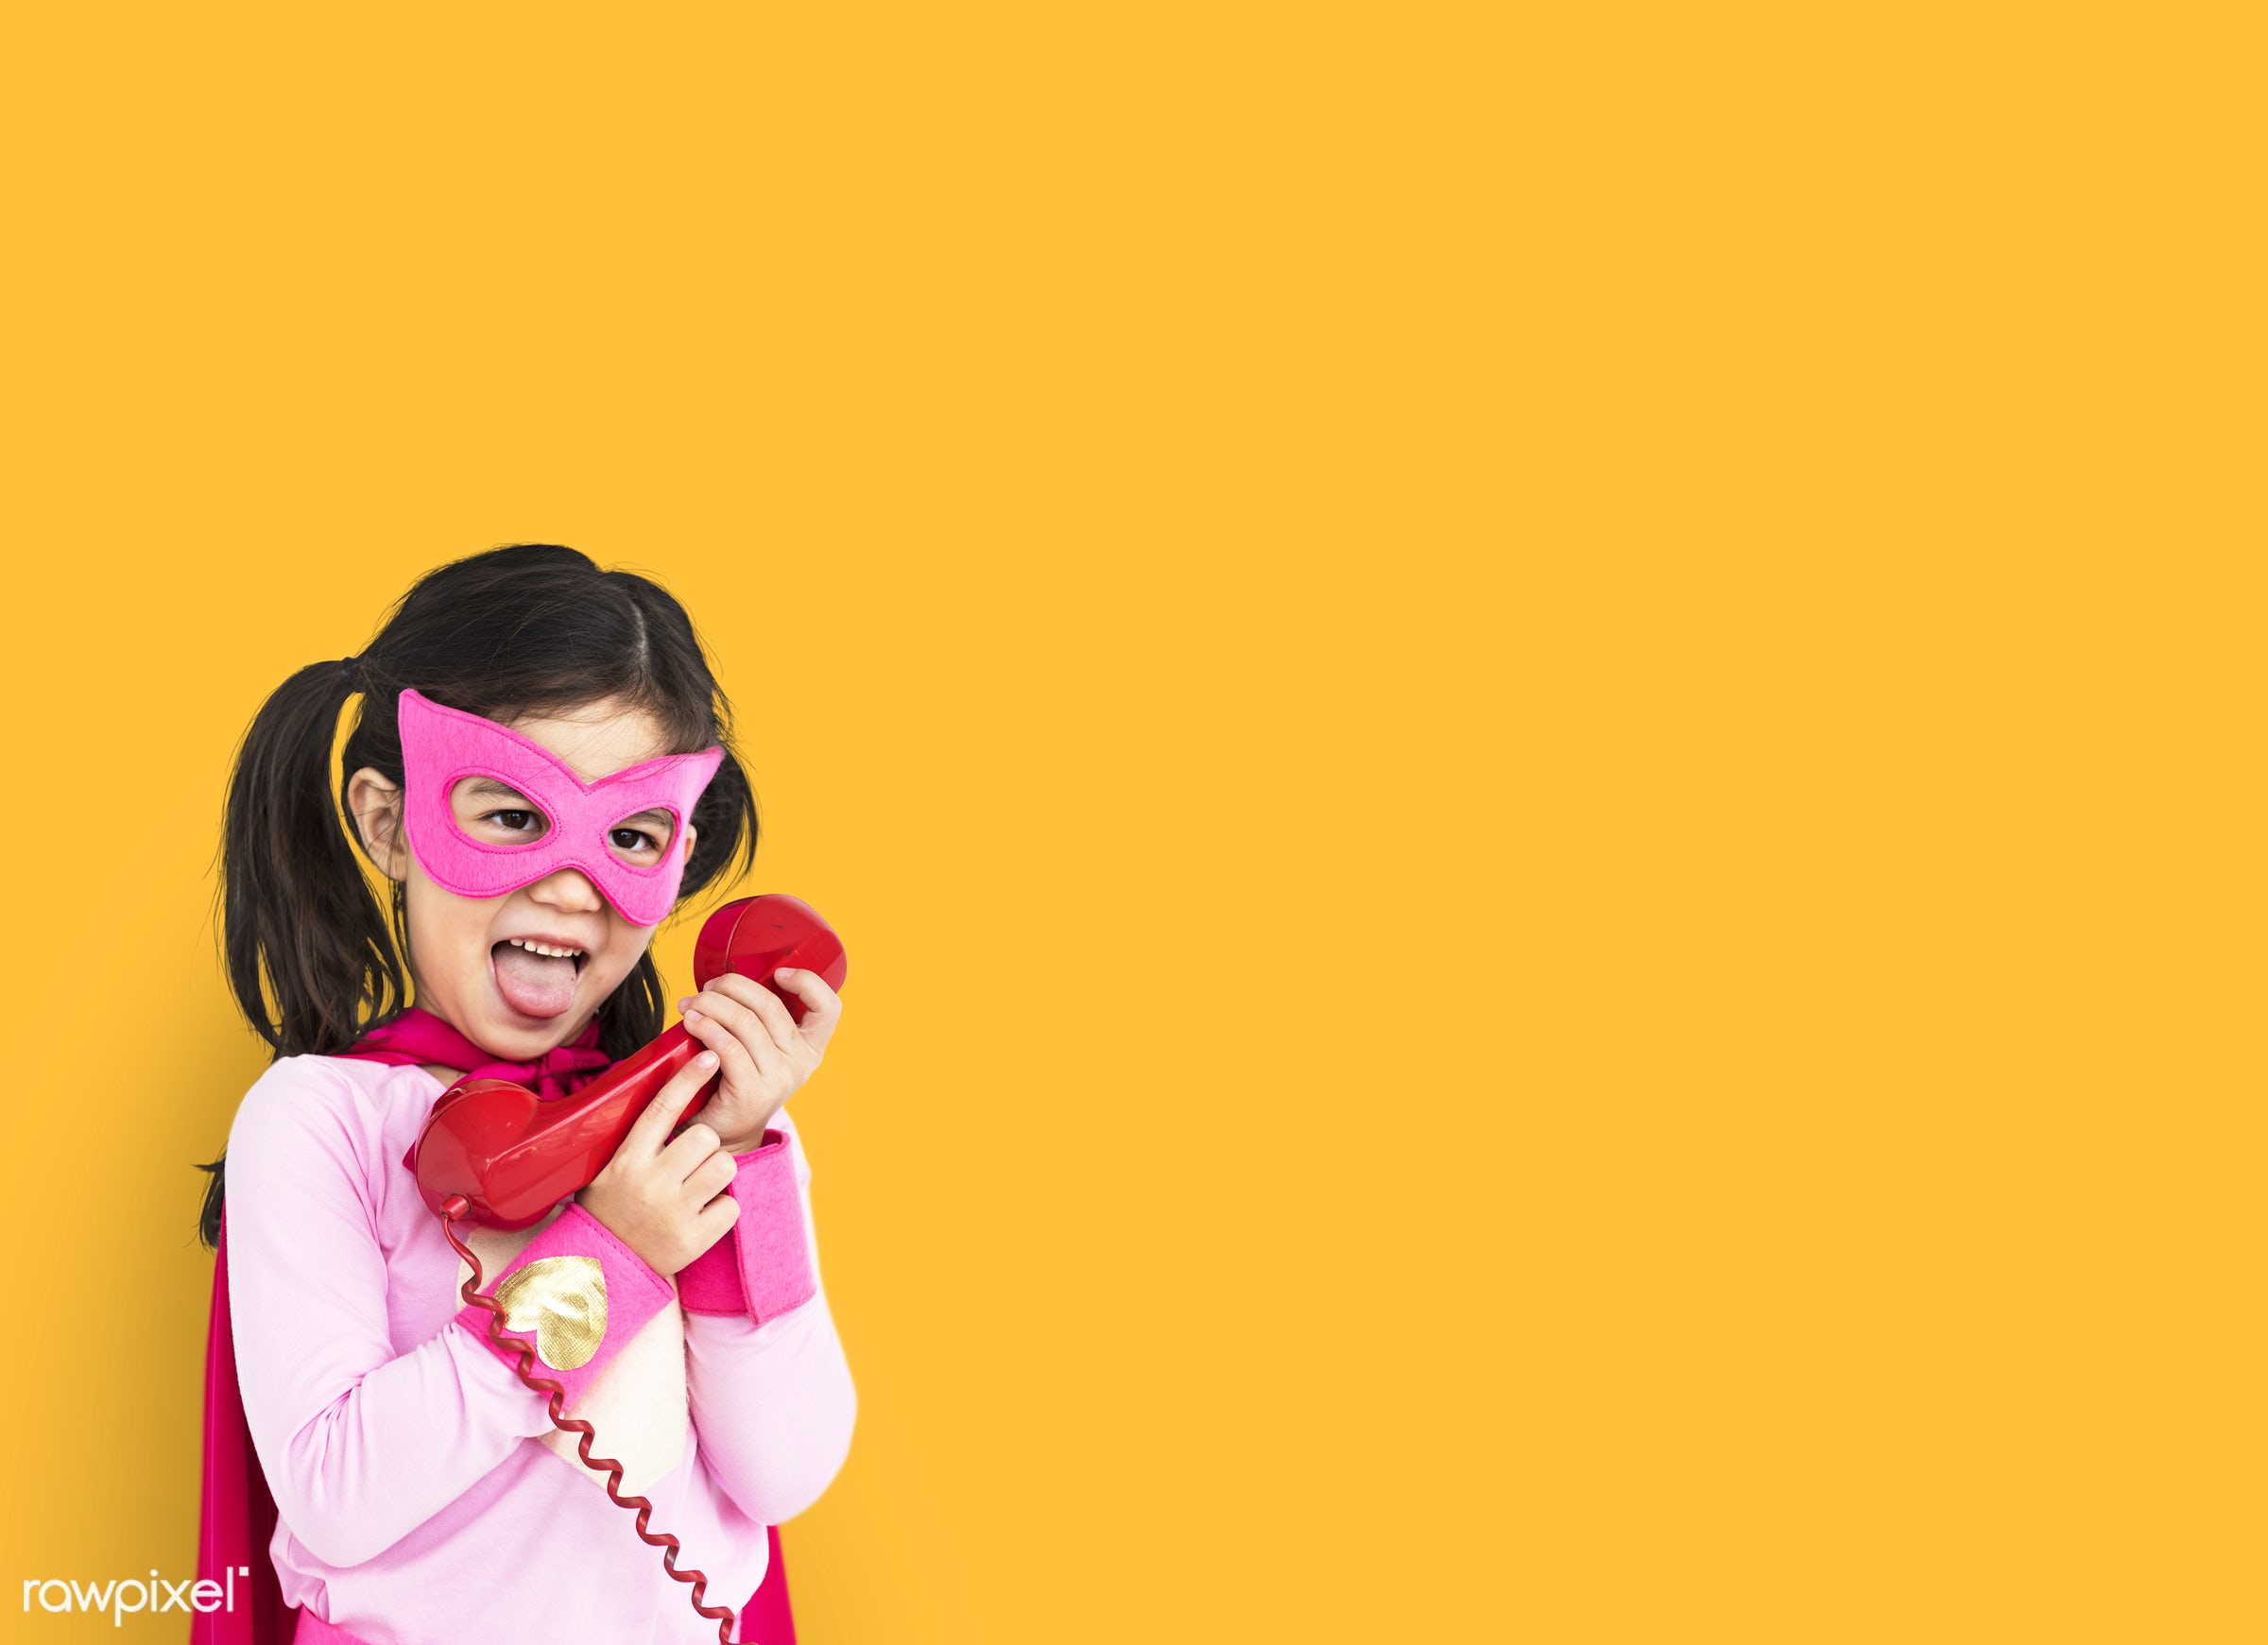 studio, expression, person, mask, yellow, people, kid, telecommunication, solo, mixed race, childhood, smile, cheerful,...